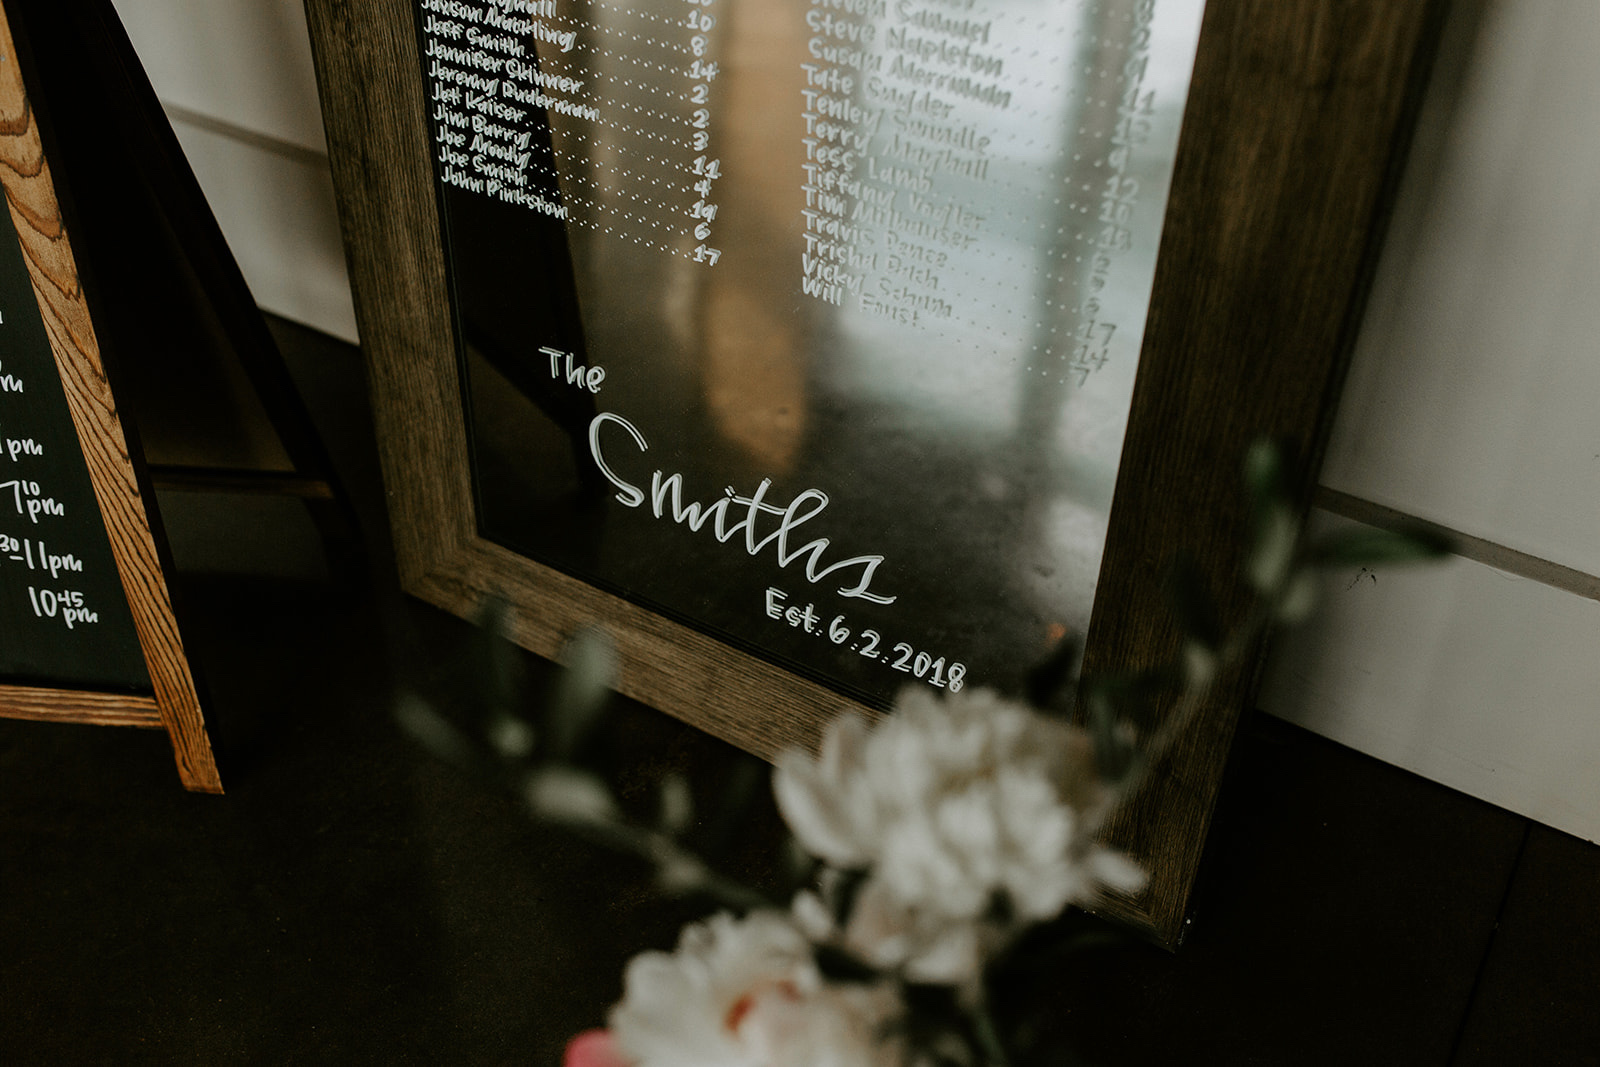 pear_tree_estate_wedding_champaign_il_wright_photographs_smith_0783.jpg